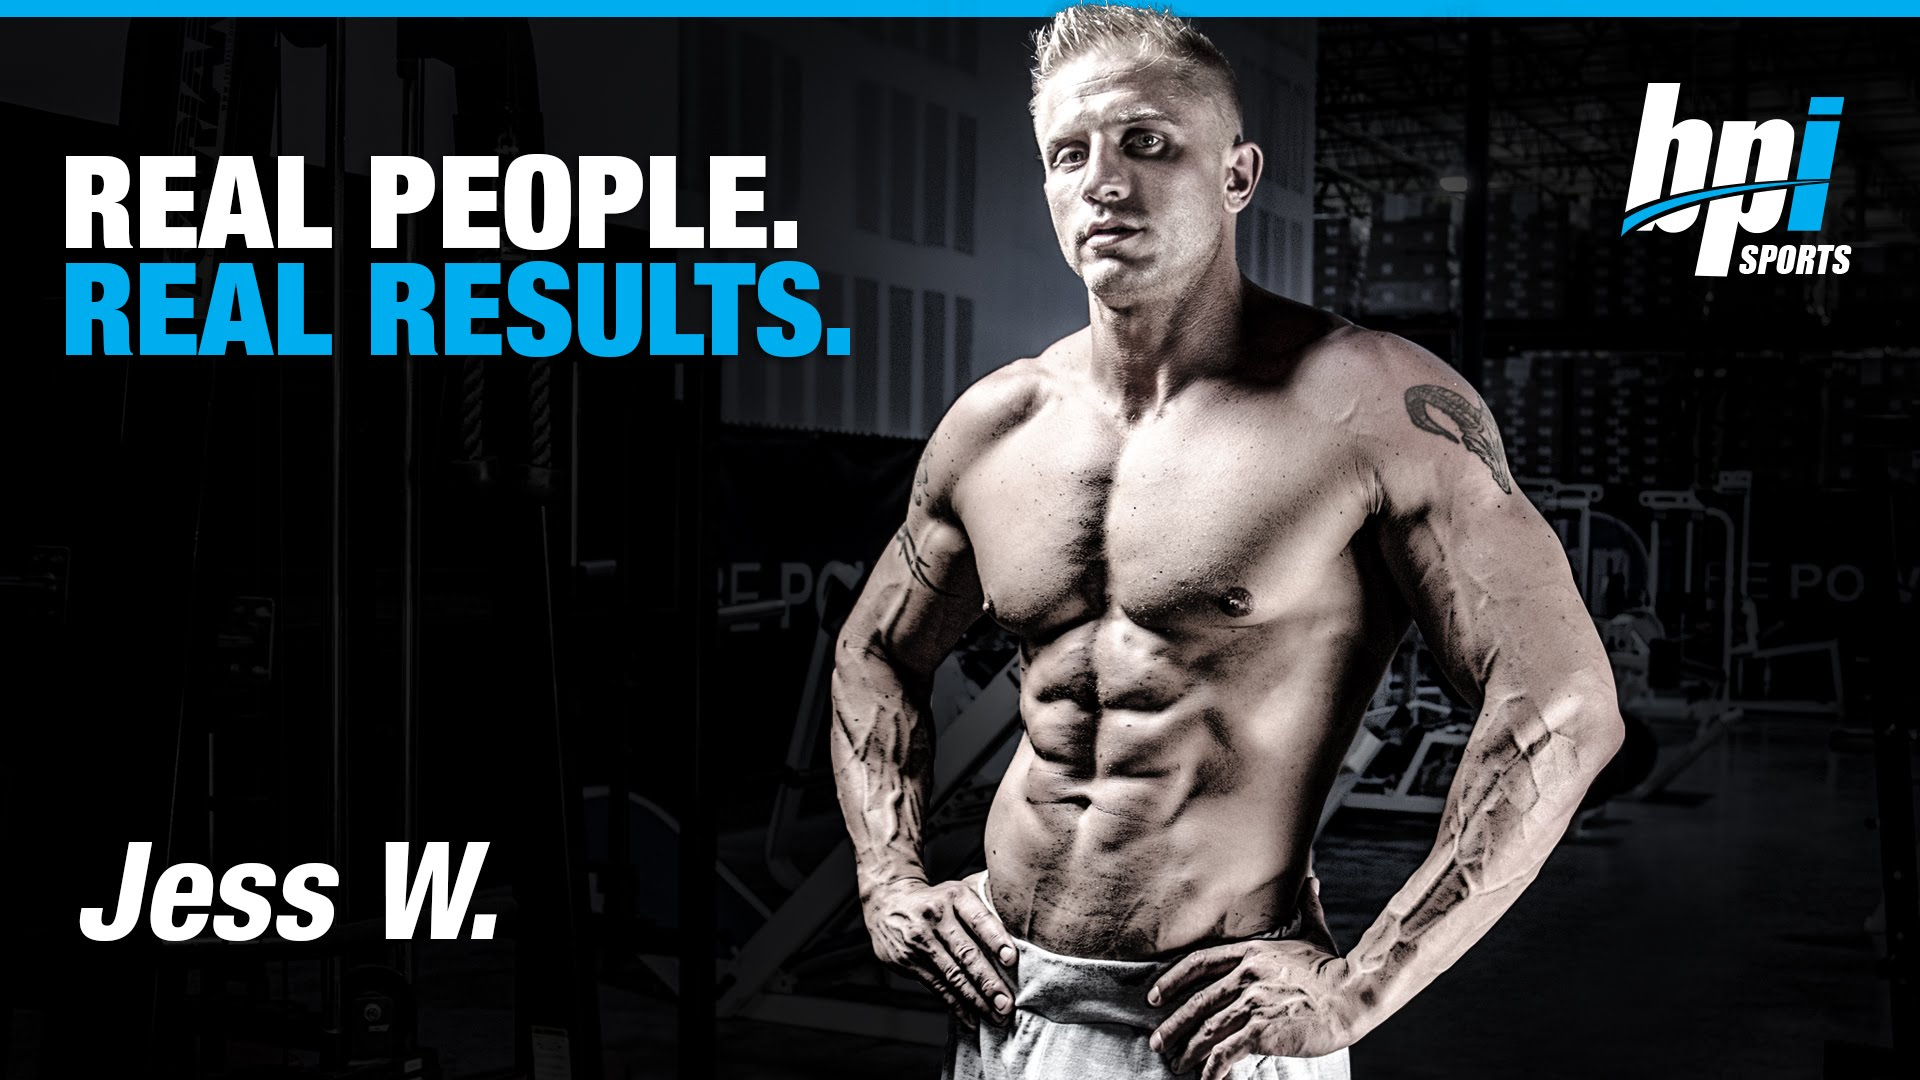 Real-People-Real-Results-NPC-Competitor-Jess-W.